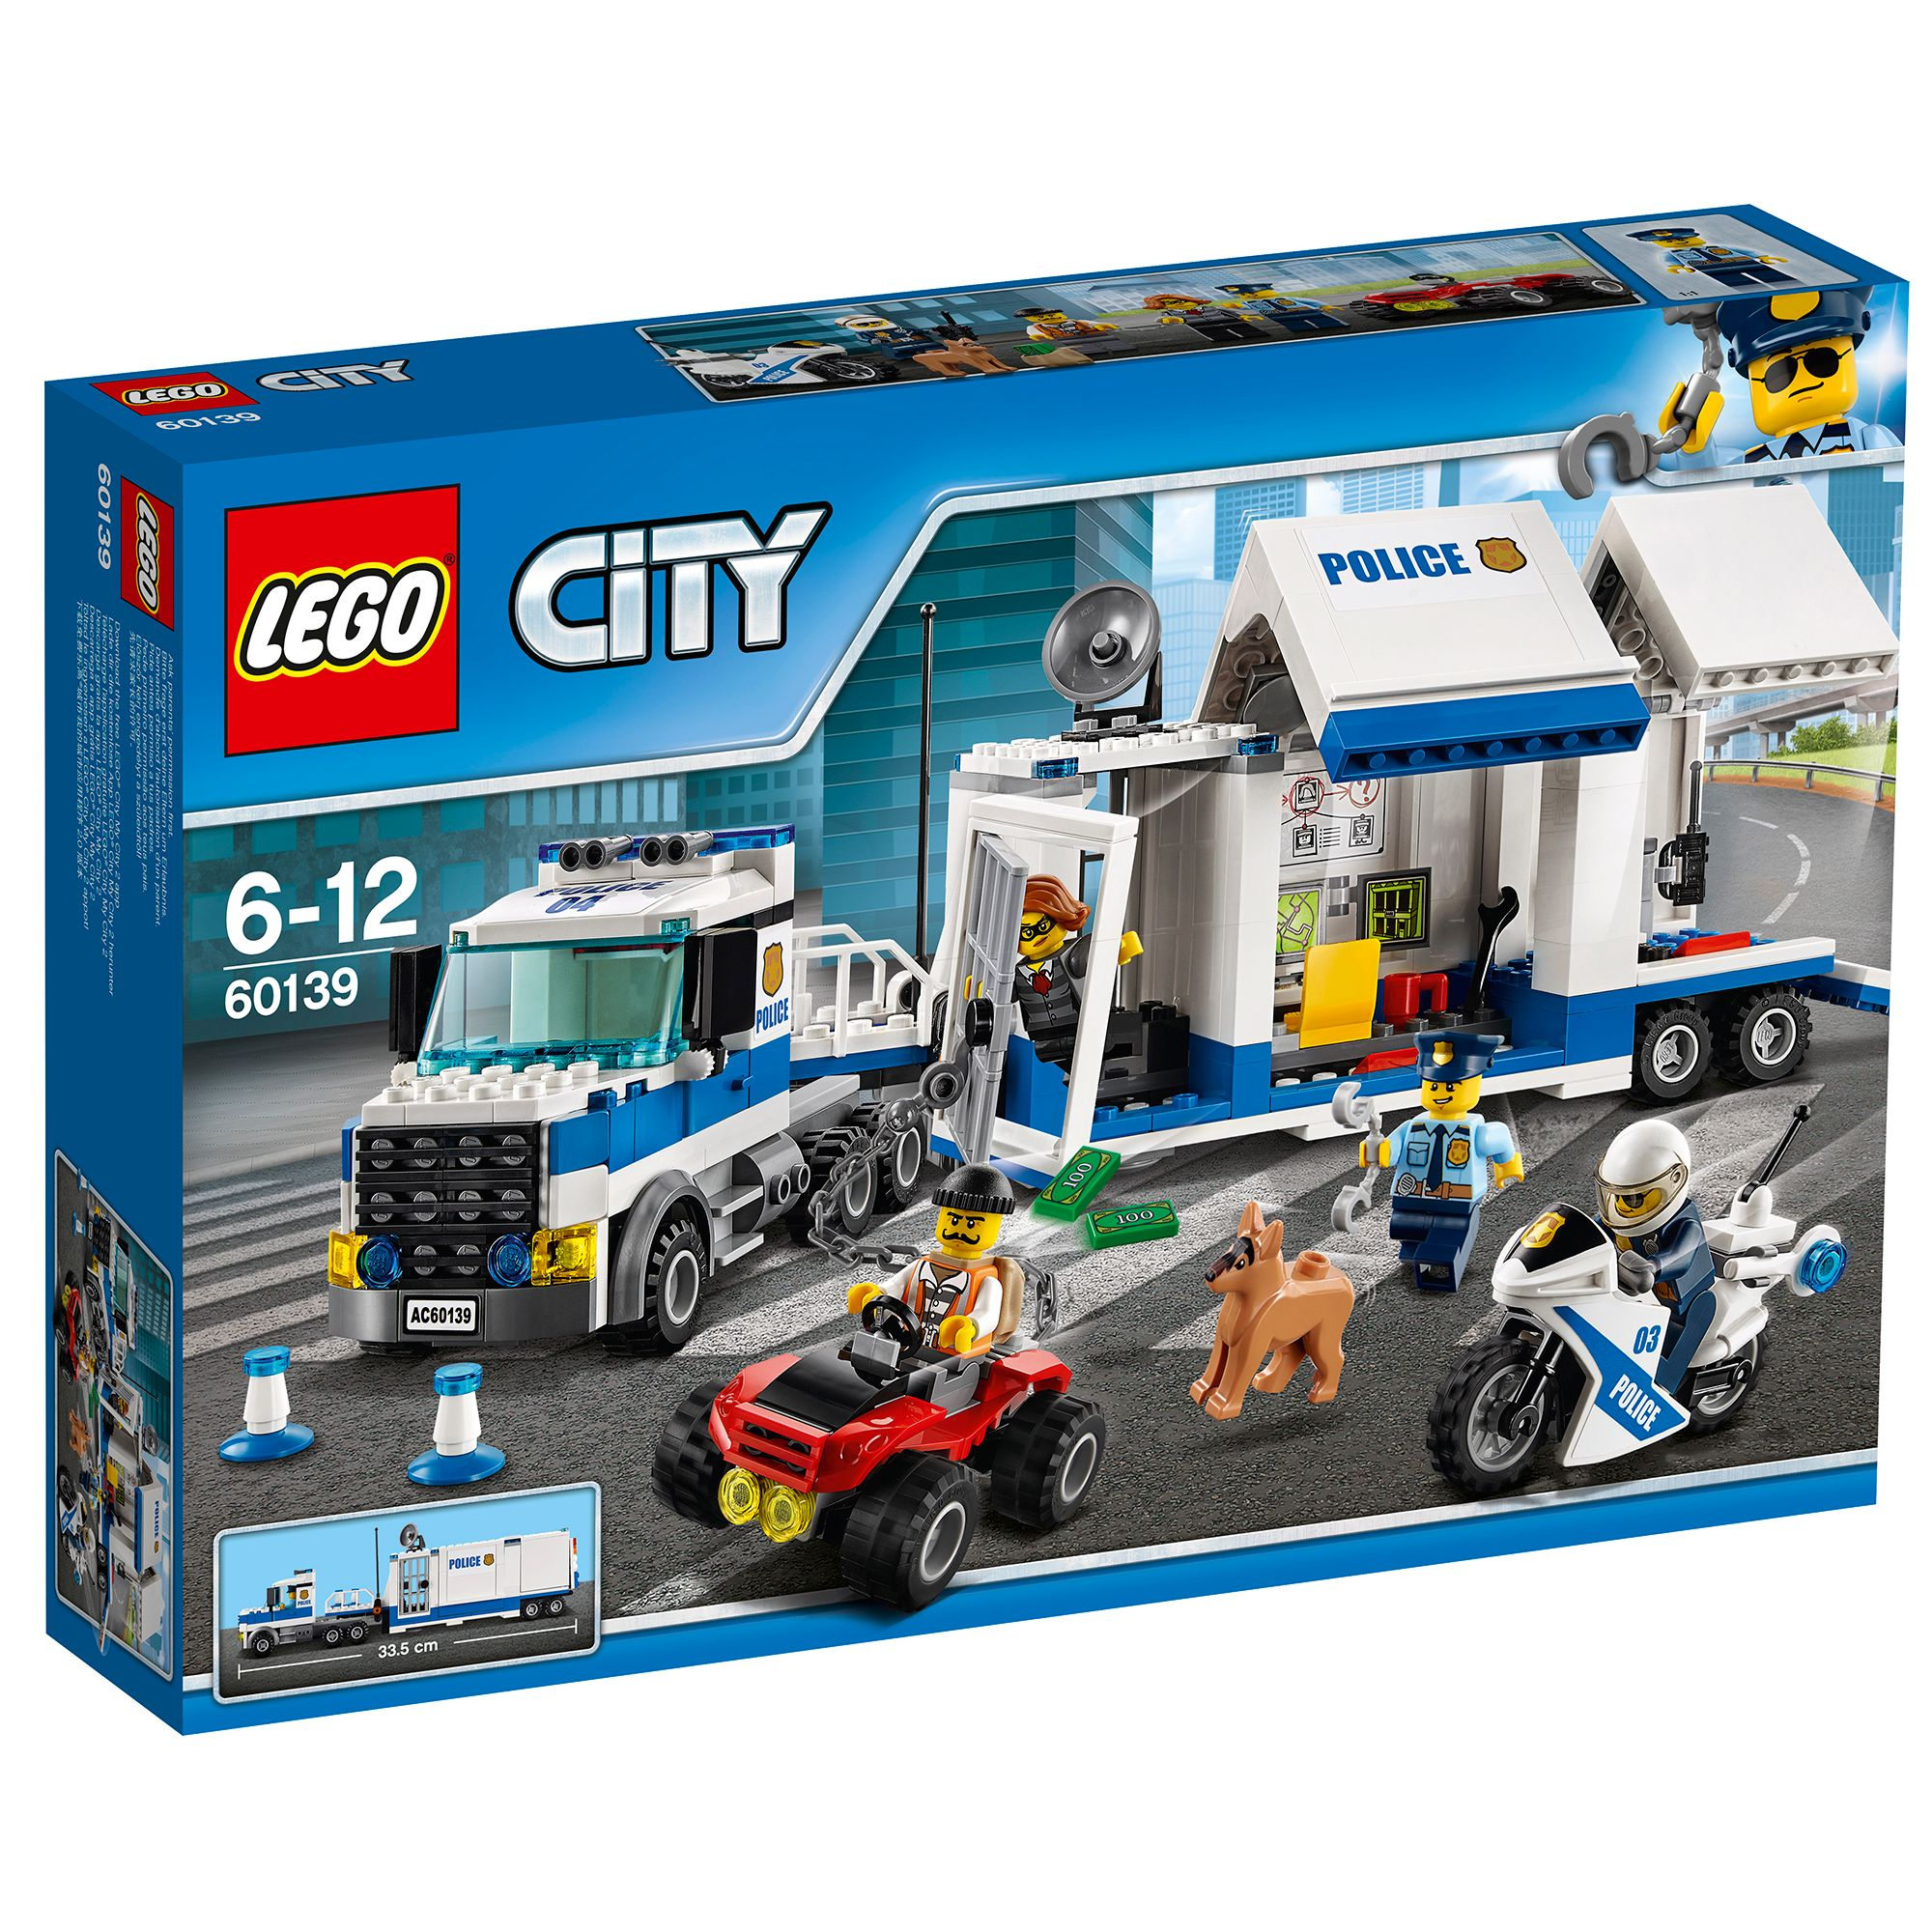 Image of Lego City Police Mobile Command Center 60139